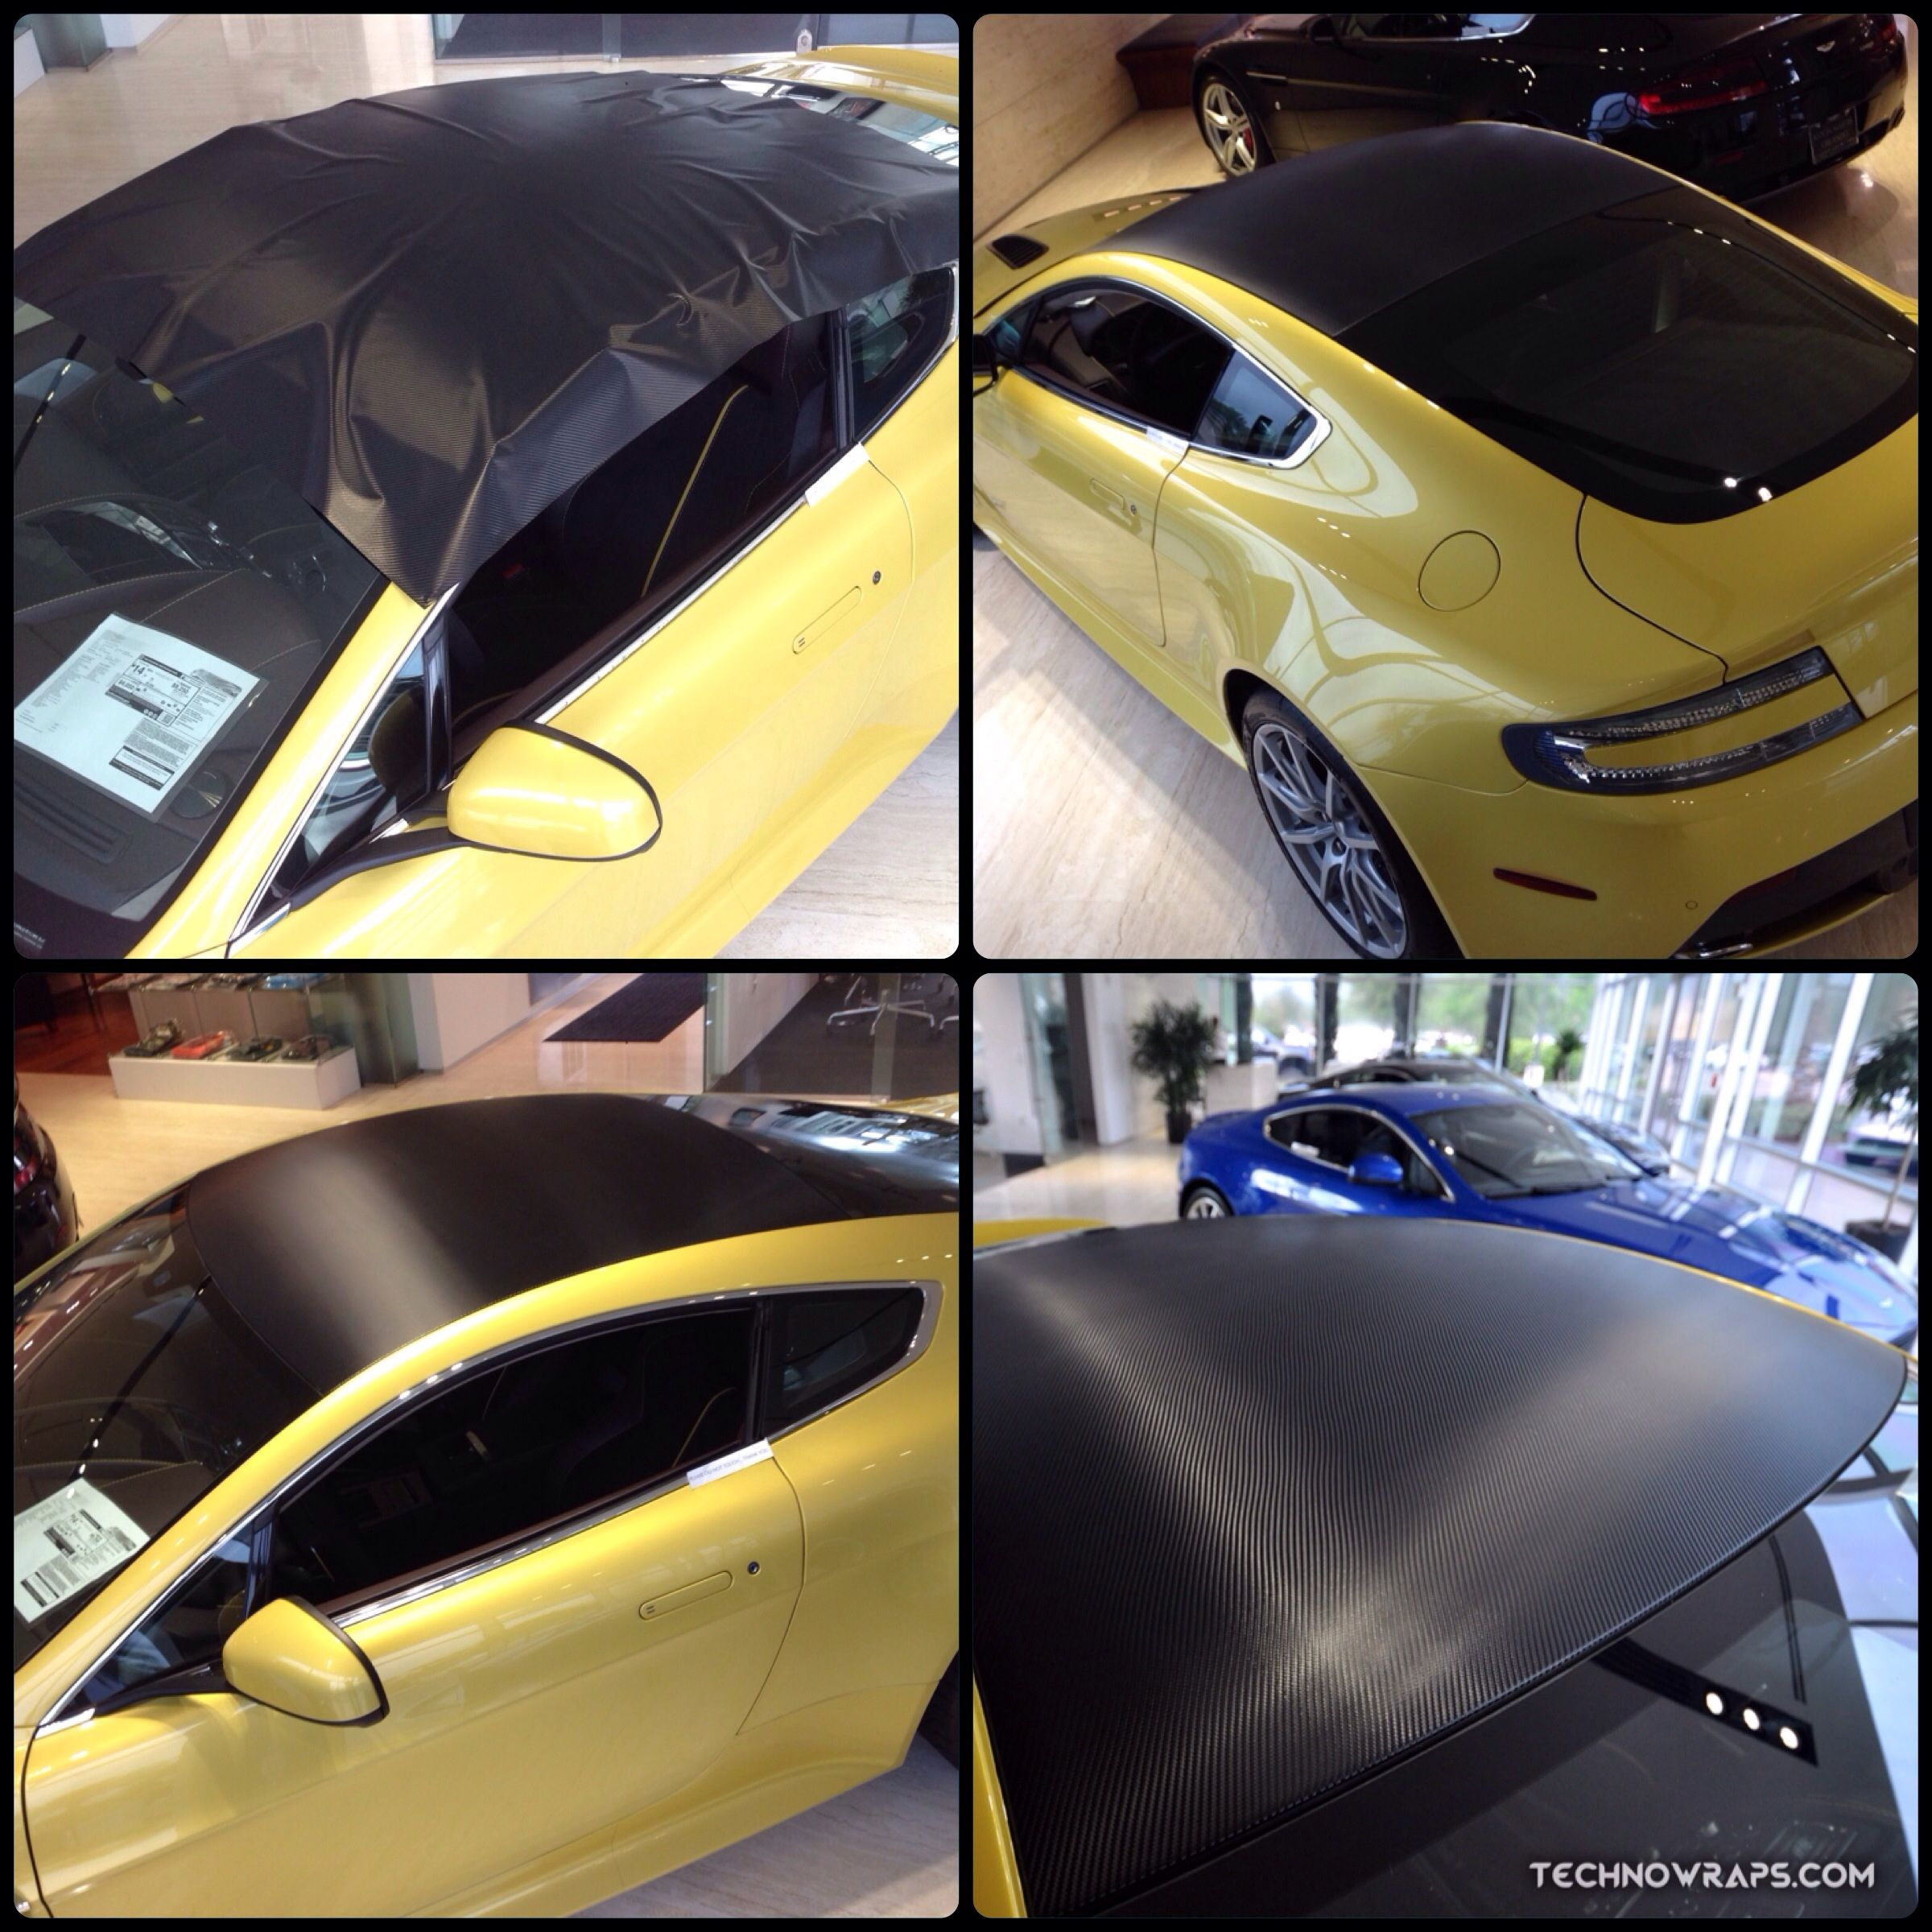 3m Series 1080 Black Carbon Fiber Roof Wrap On Aston Martin Car Installed By Technosigns In Orlando Florida Aston Martin Cars Car Wrap Carbon Fiber